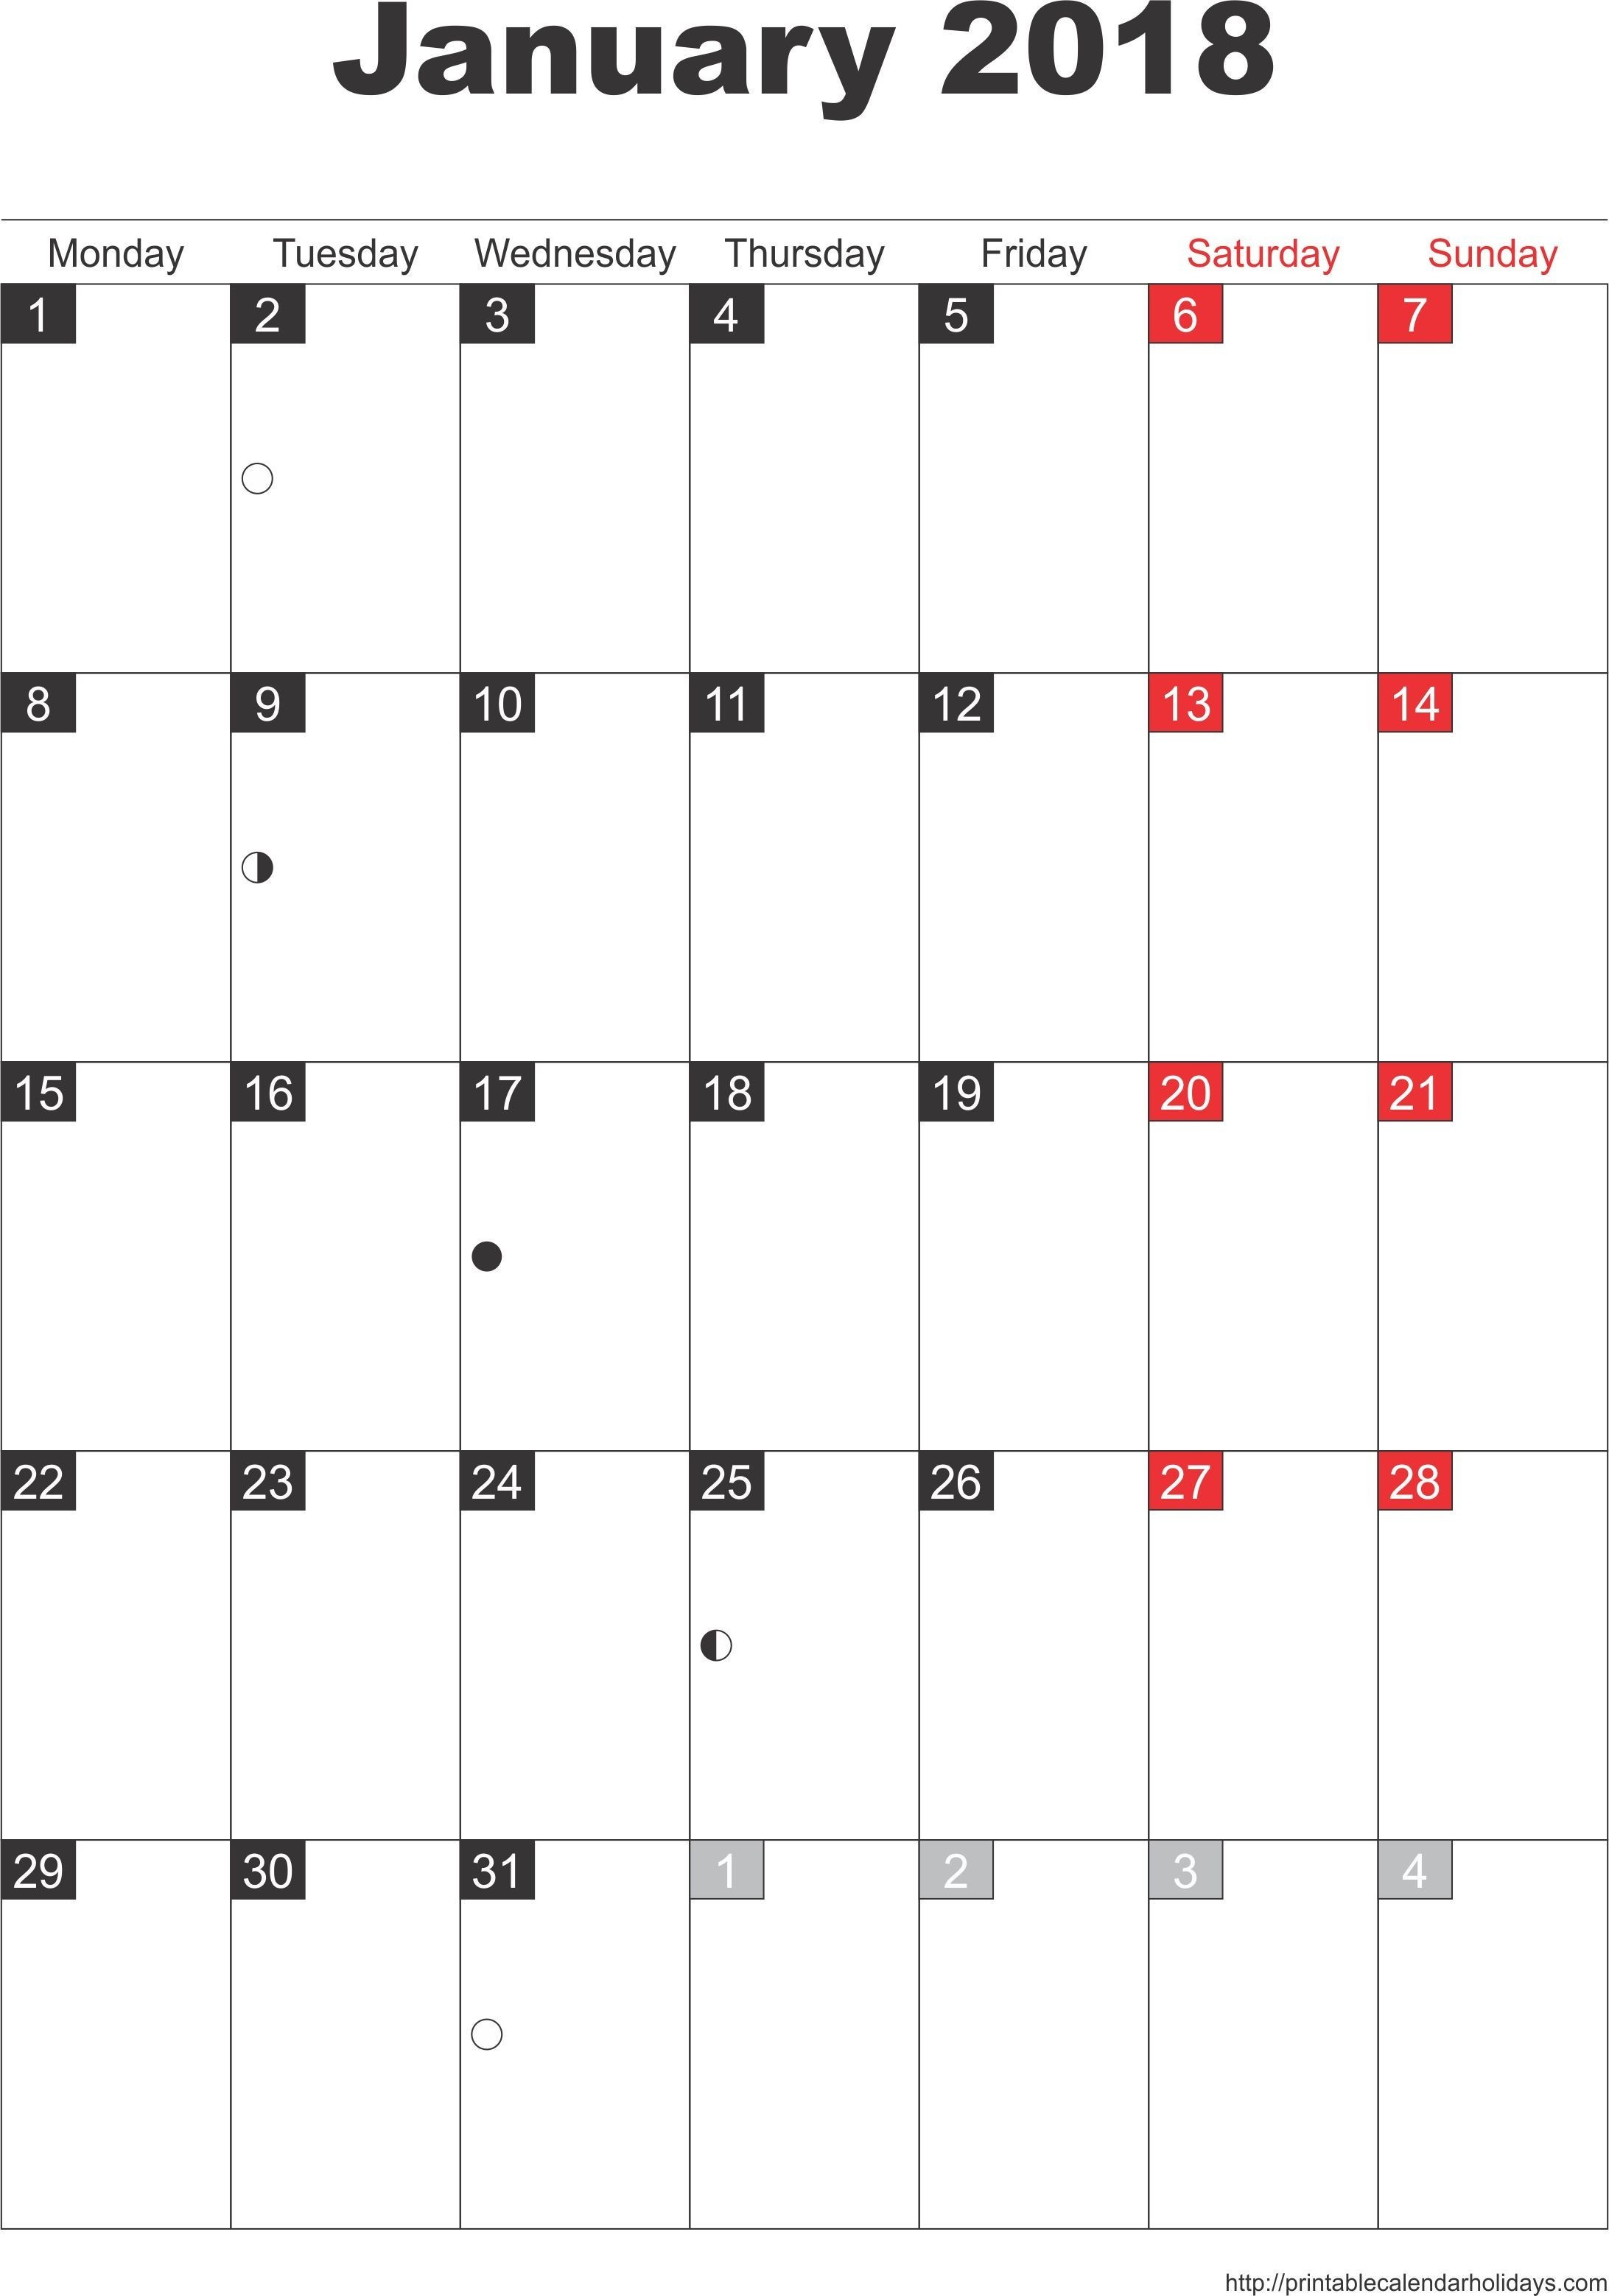 Calendario 2019 Online Actual January Calendar Template New Calendar Gif Yepigames Me – Template Ideas Of Calendario 2019 Online Más Actual Custom Calendar Desk Pad Calendario Ilustrado 2016 Gratis Fashion